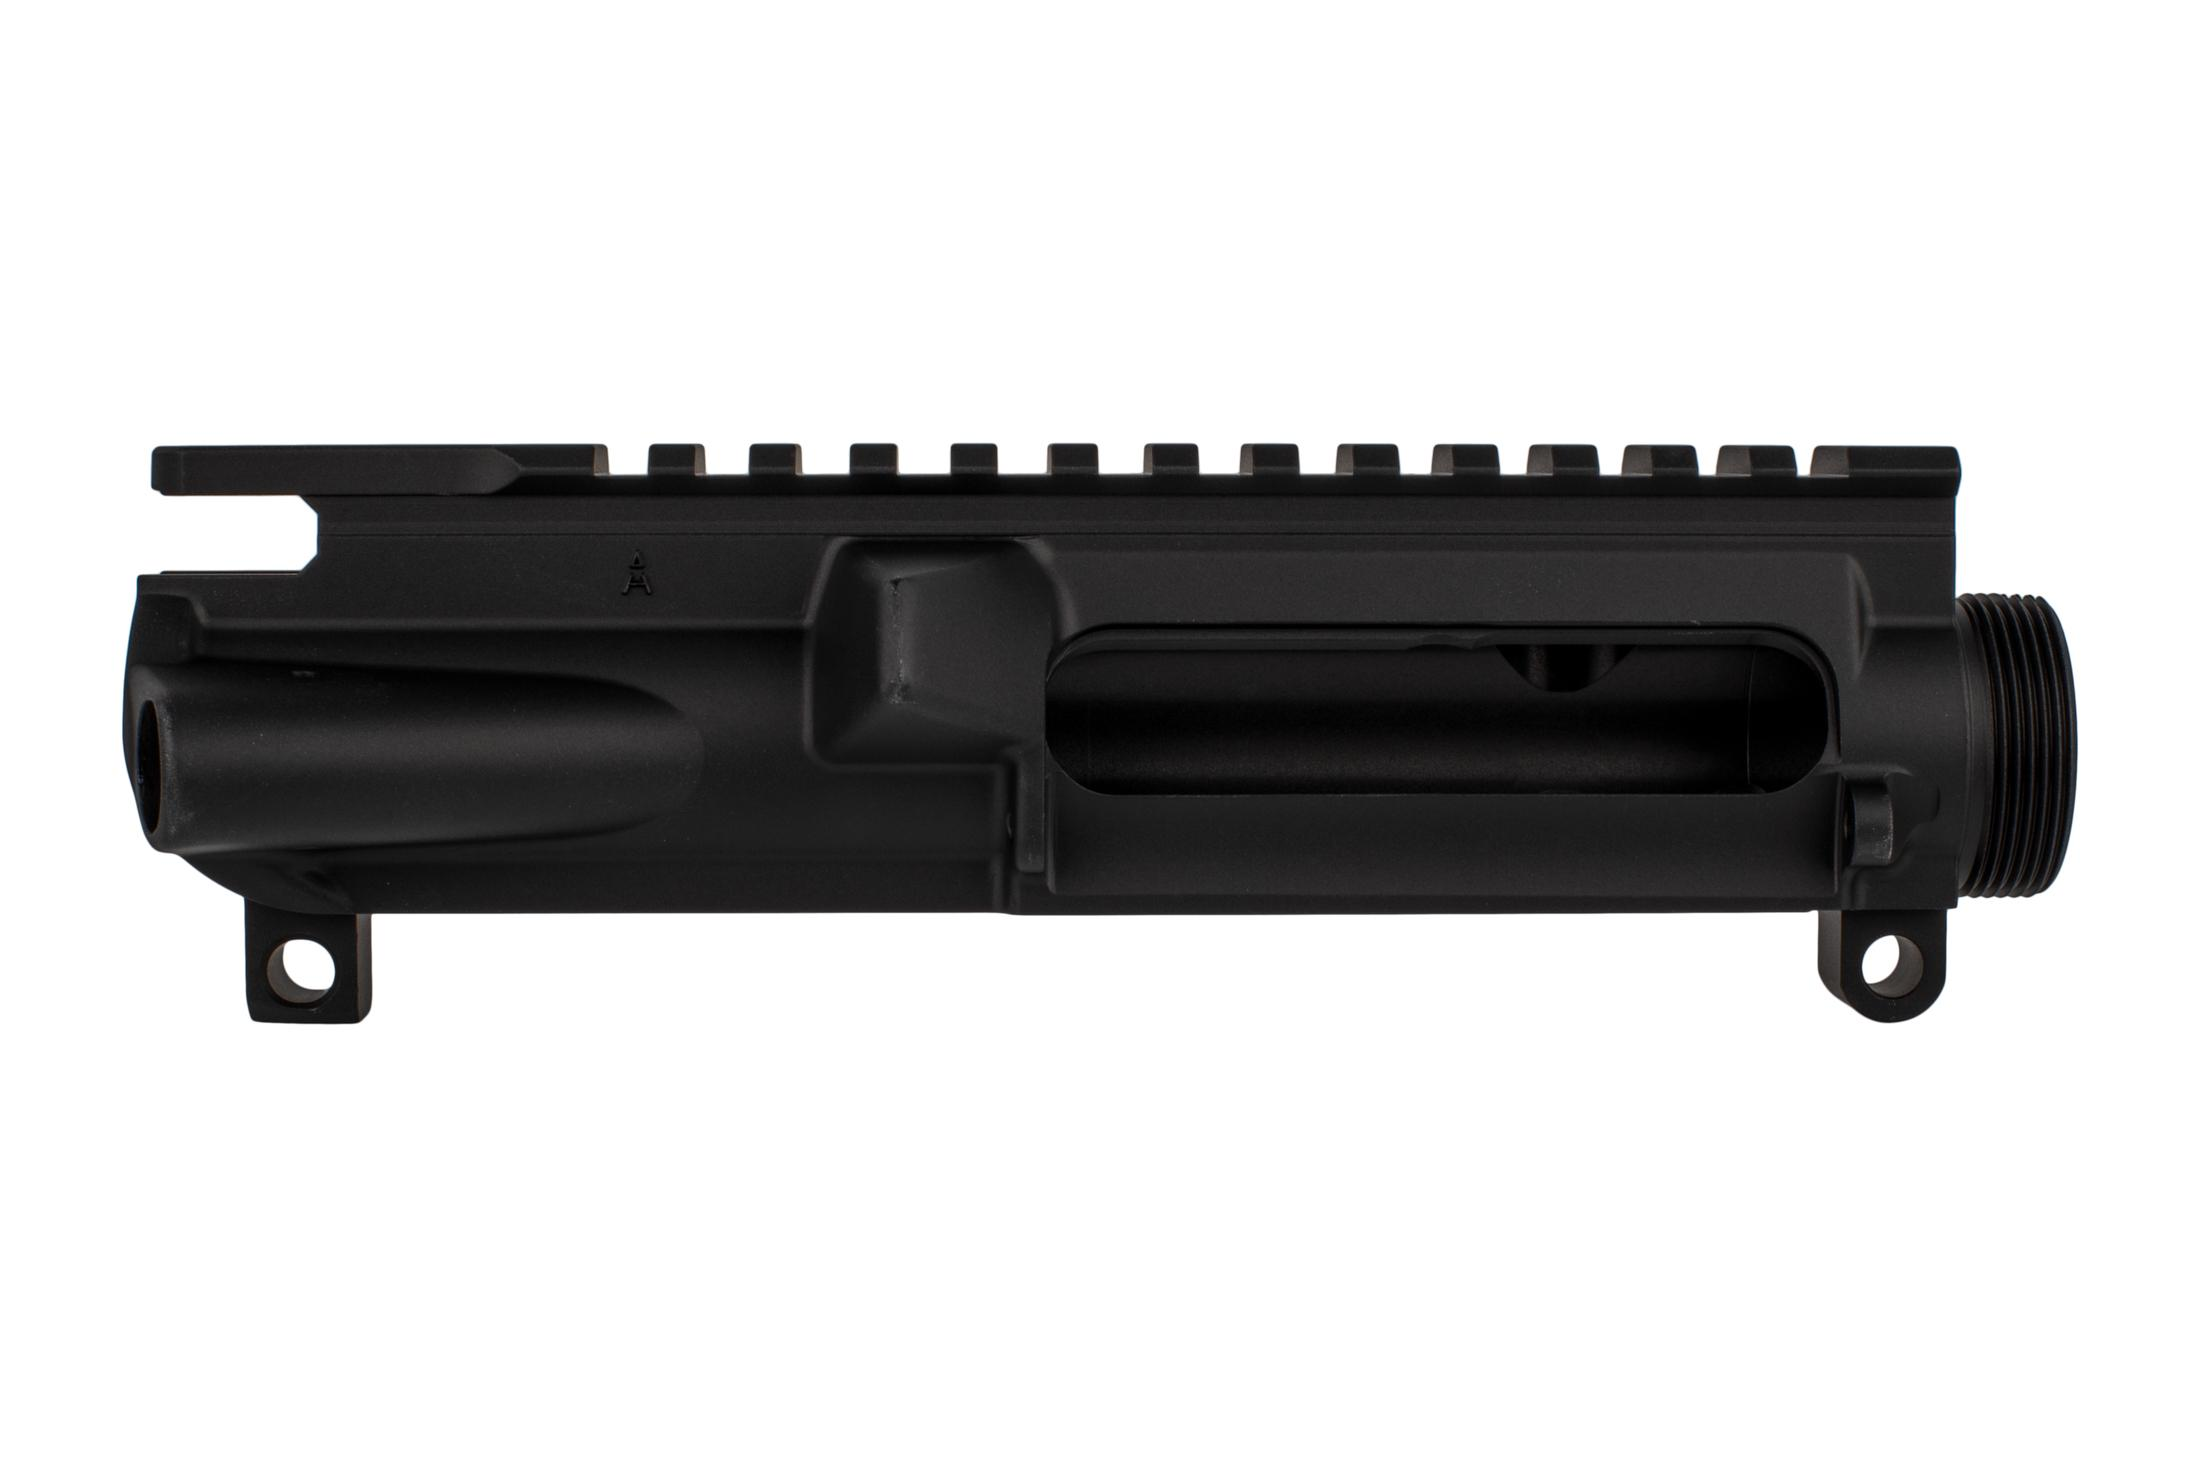 The Aero Precision stripped upper XL is forged from 7075-T6 aluminum